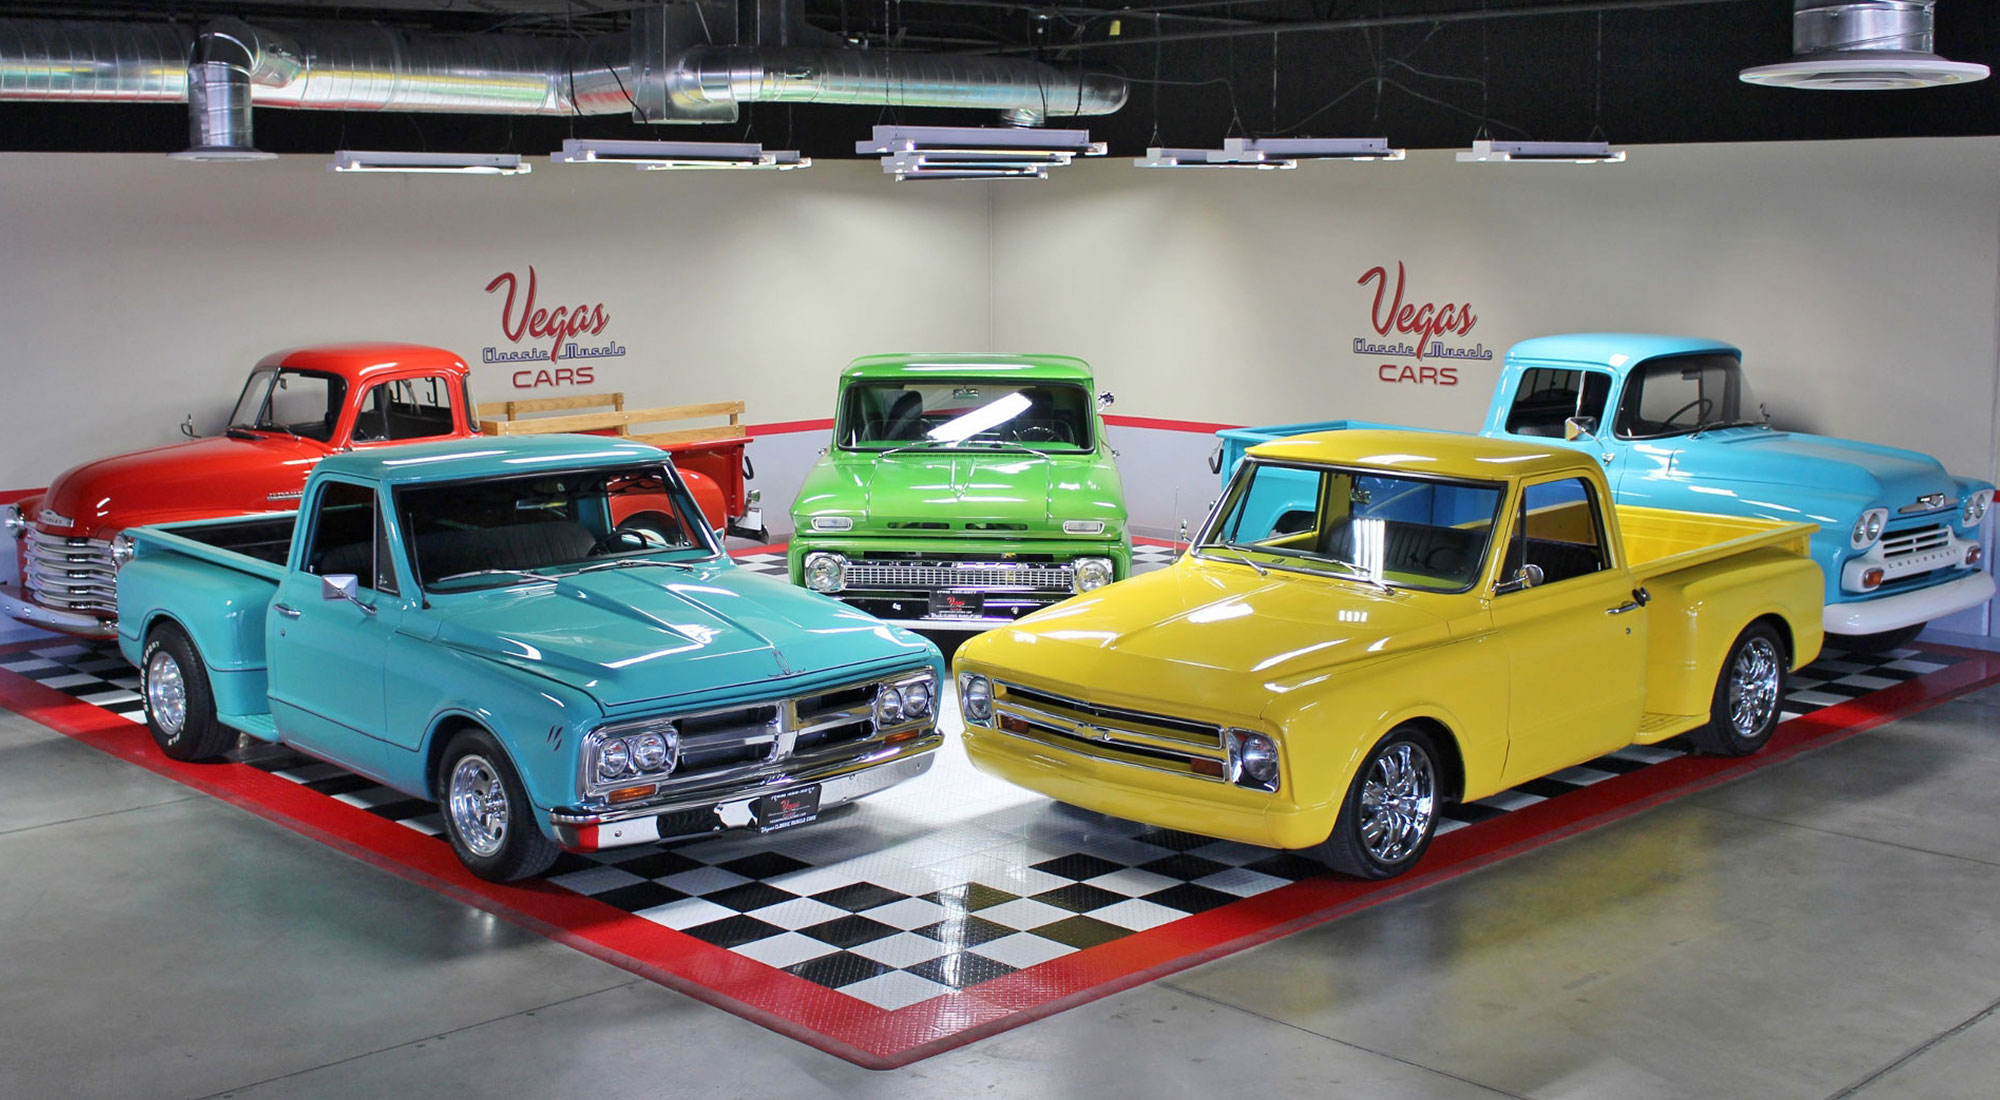 West Coast Custom Cars For Sale >> Classic Cars & Muscle Cars For Sale in Las Vegas NV